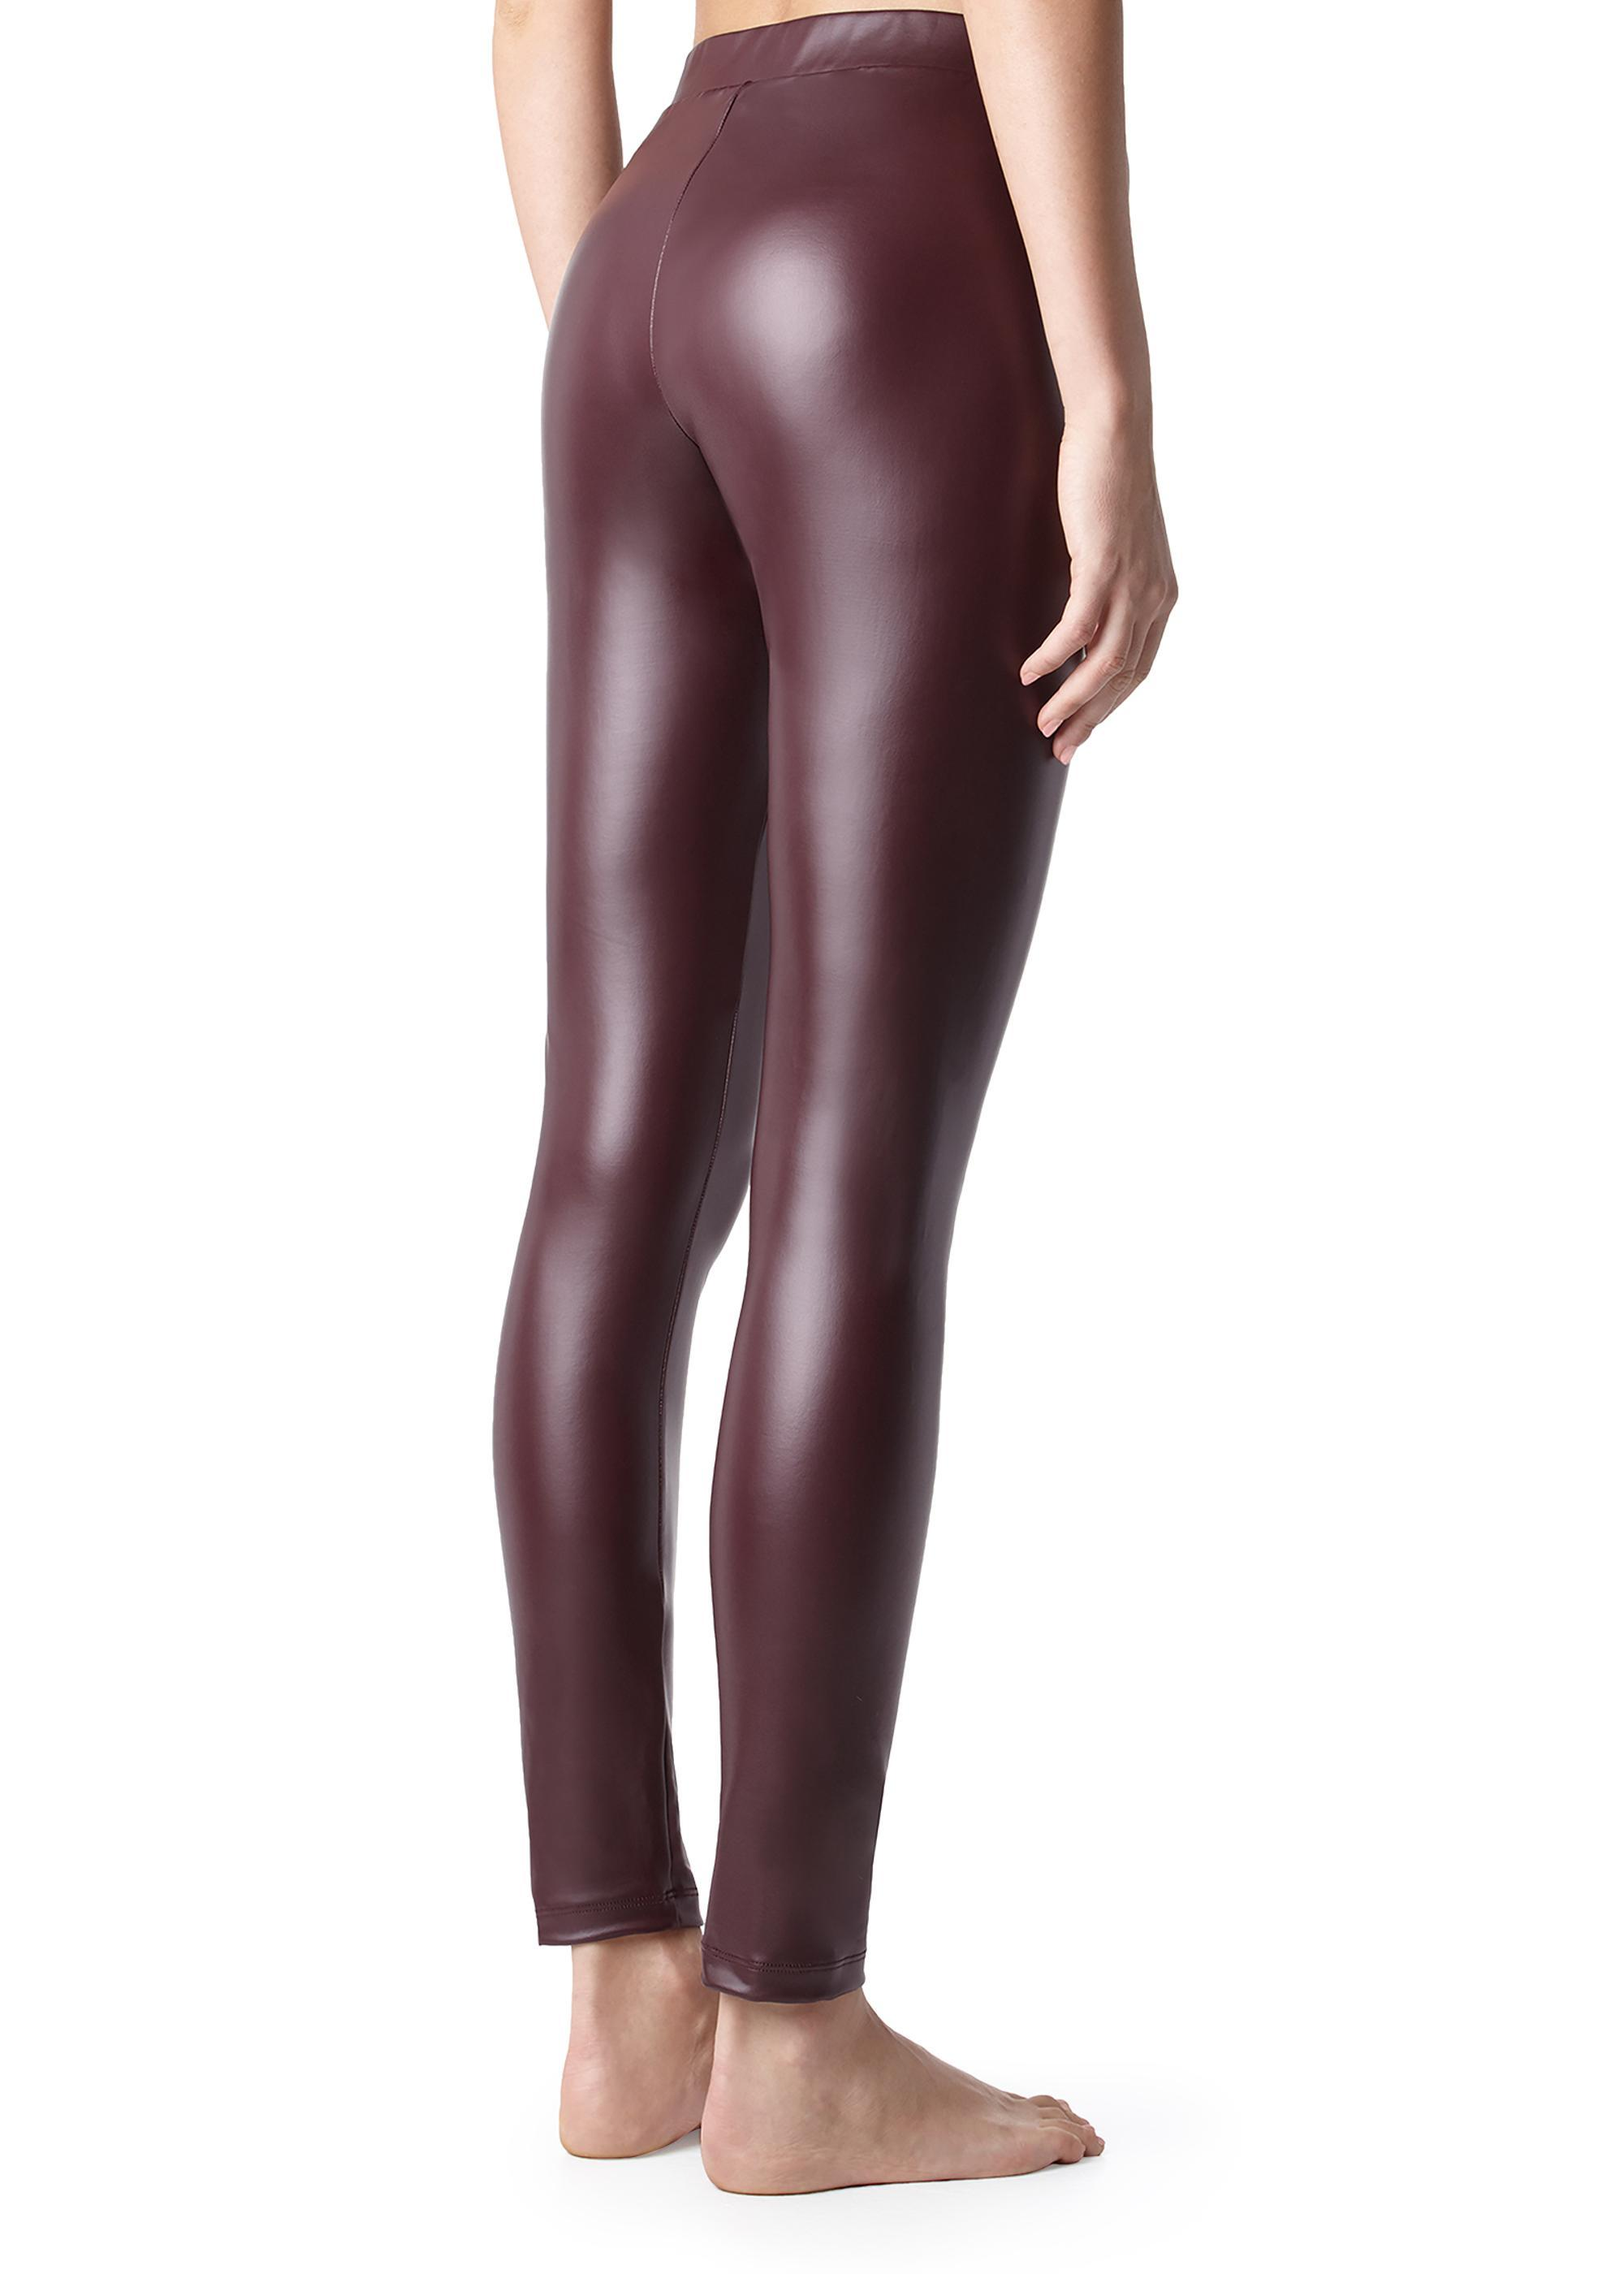 098c13b62adf8a Thermal Leather Effect Leggings - Calzedonia